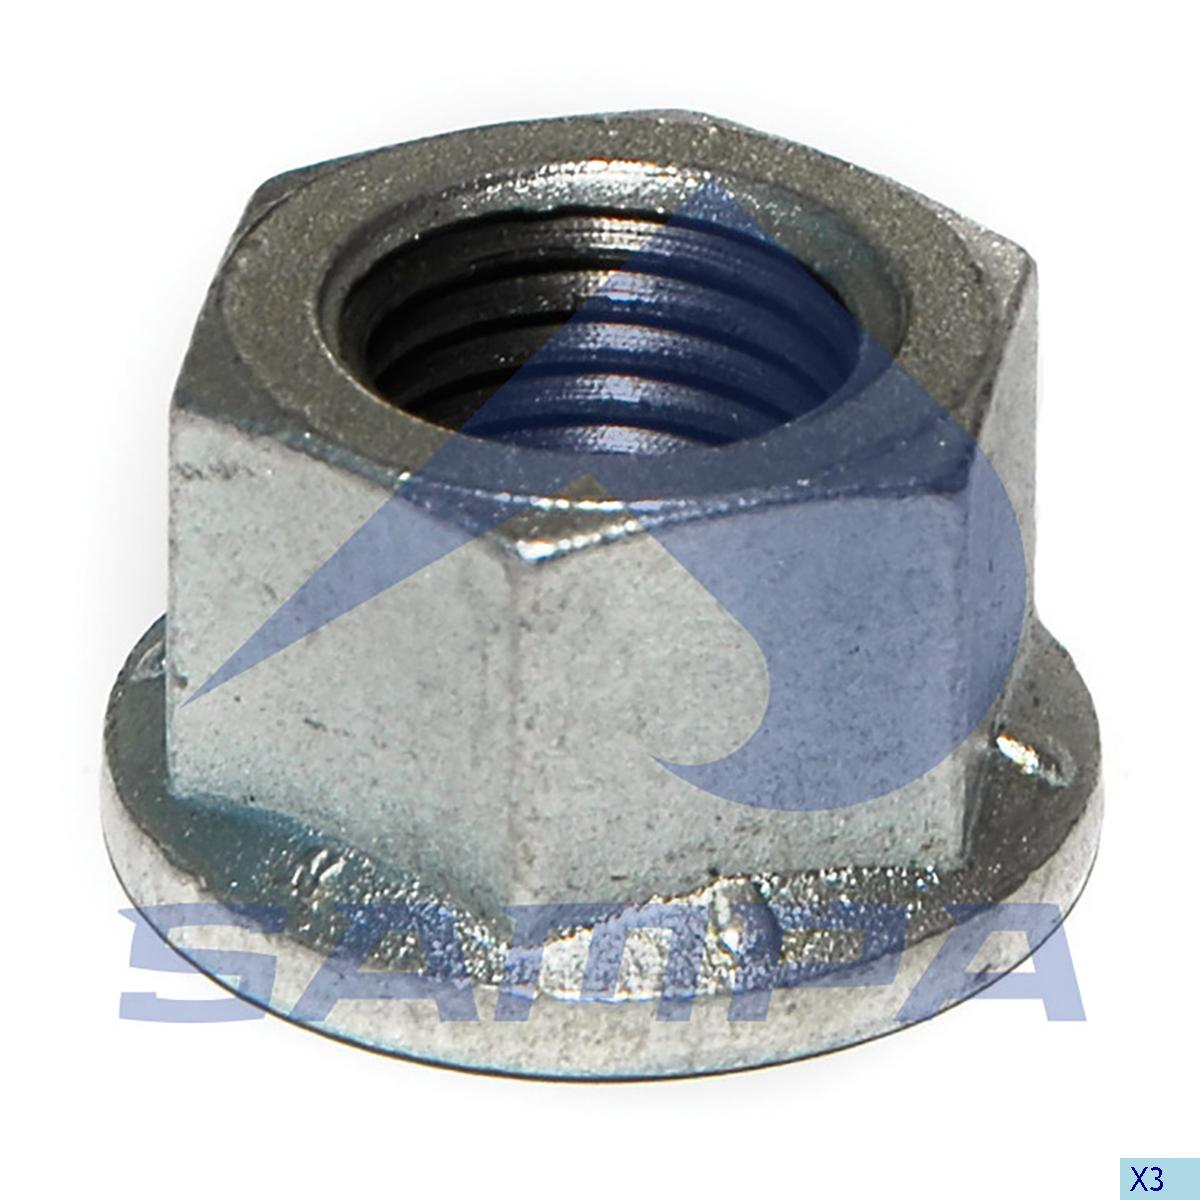 Nut, Stud, Bergische Achsen, Power Unit